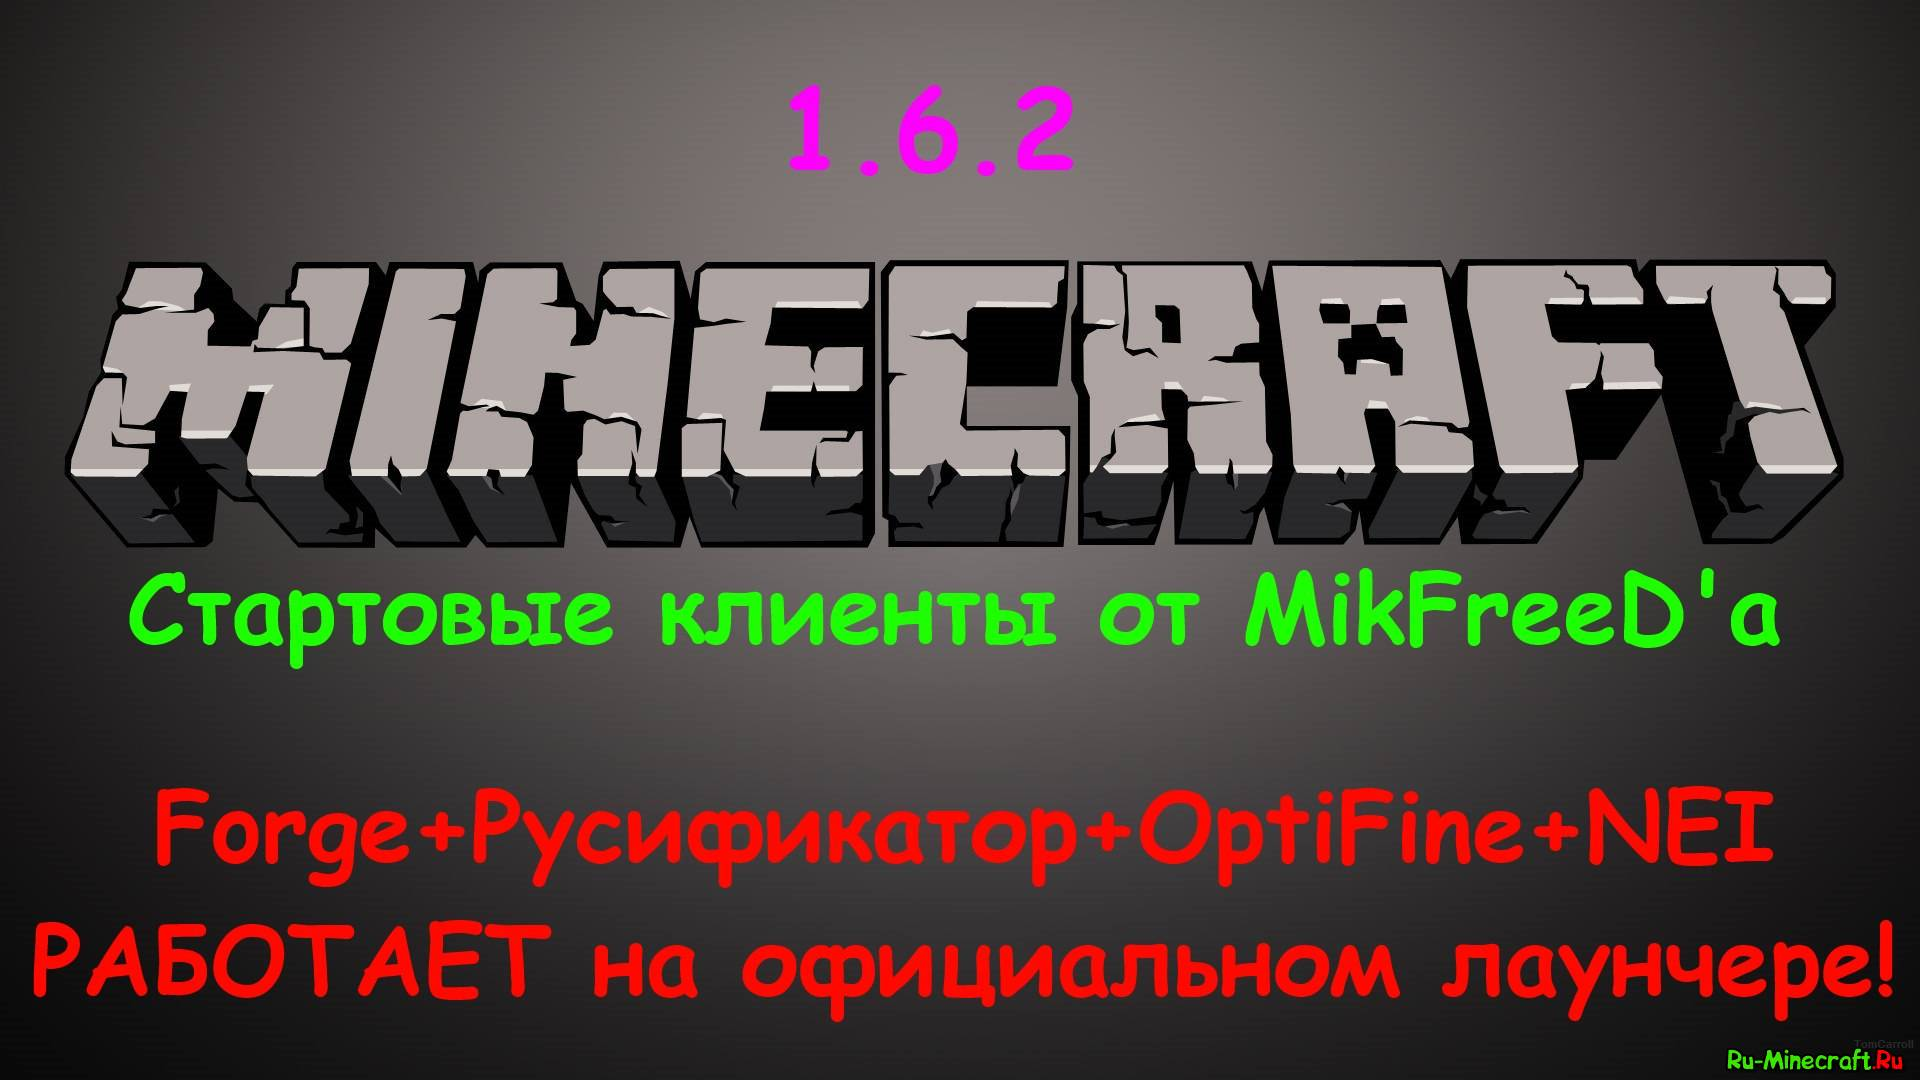 Скачать minecraft 1.5.2 с industrial craft 2 buildcraft forestry - 91